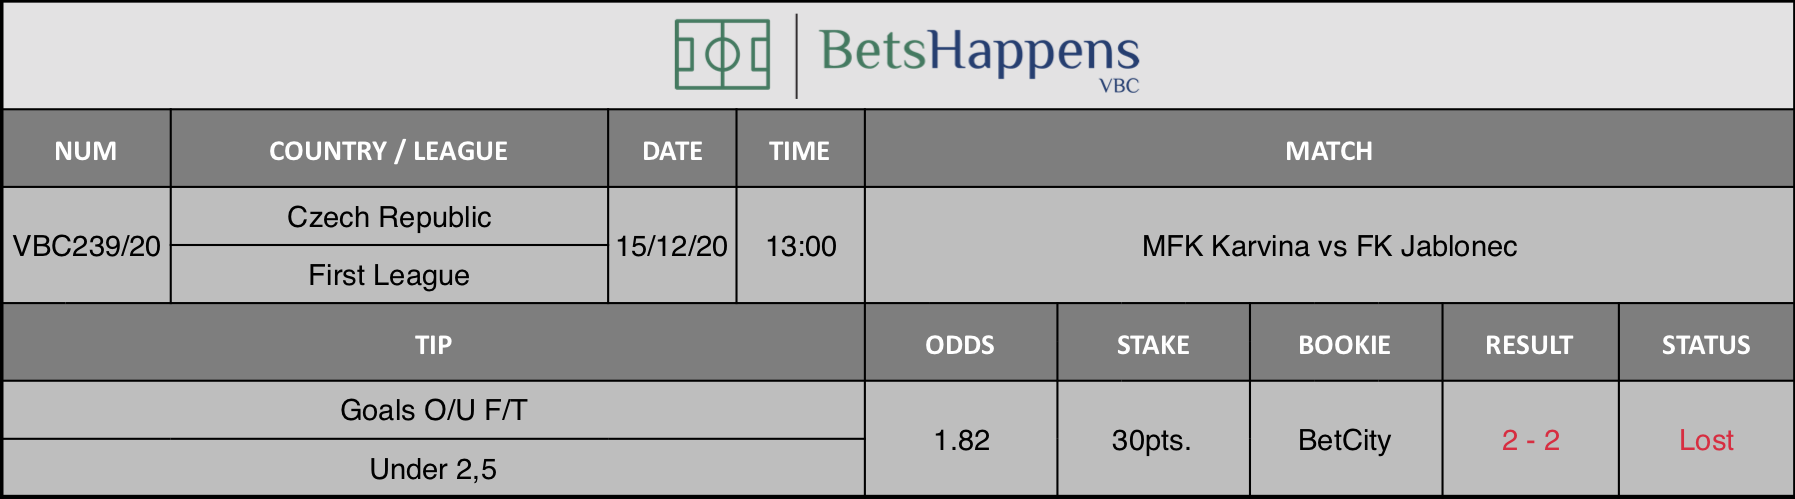 Results of our tip for the MFK Karvina vs FK Jablonec match where Goals O/U F/T Under 2,5 is recommended.